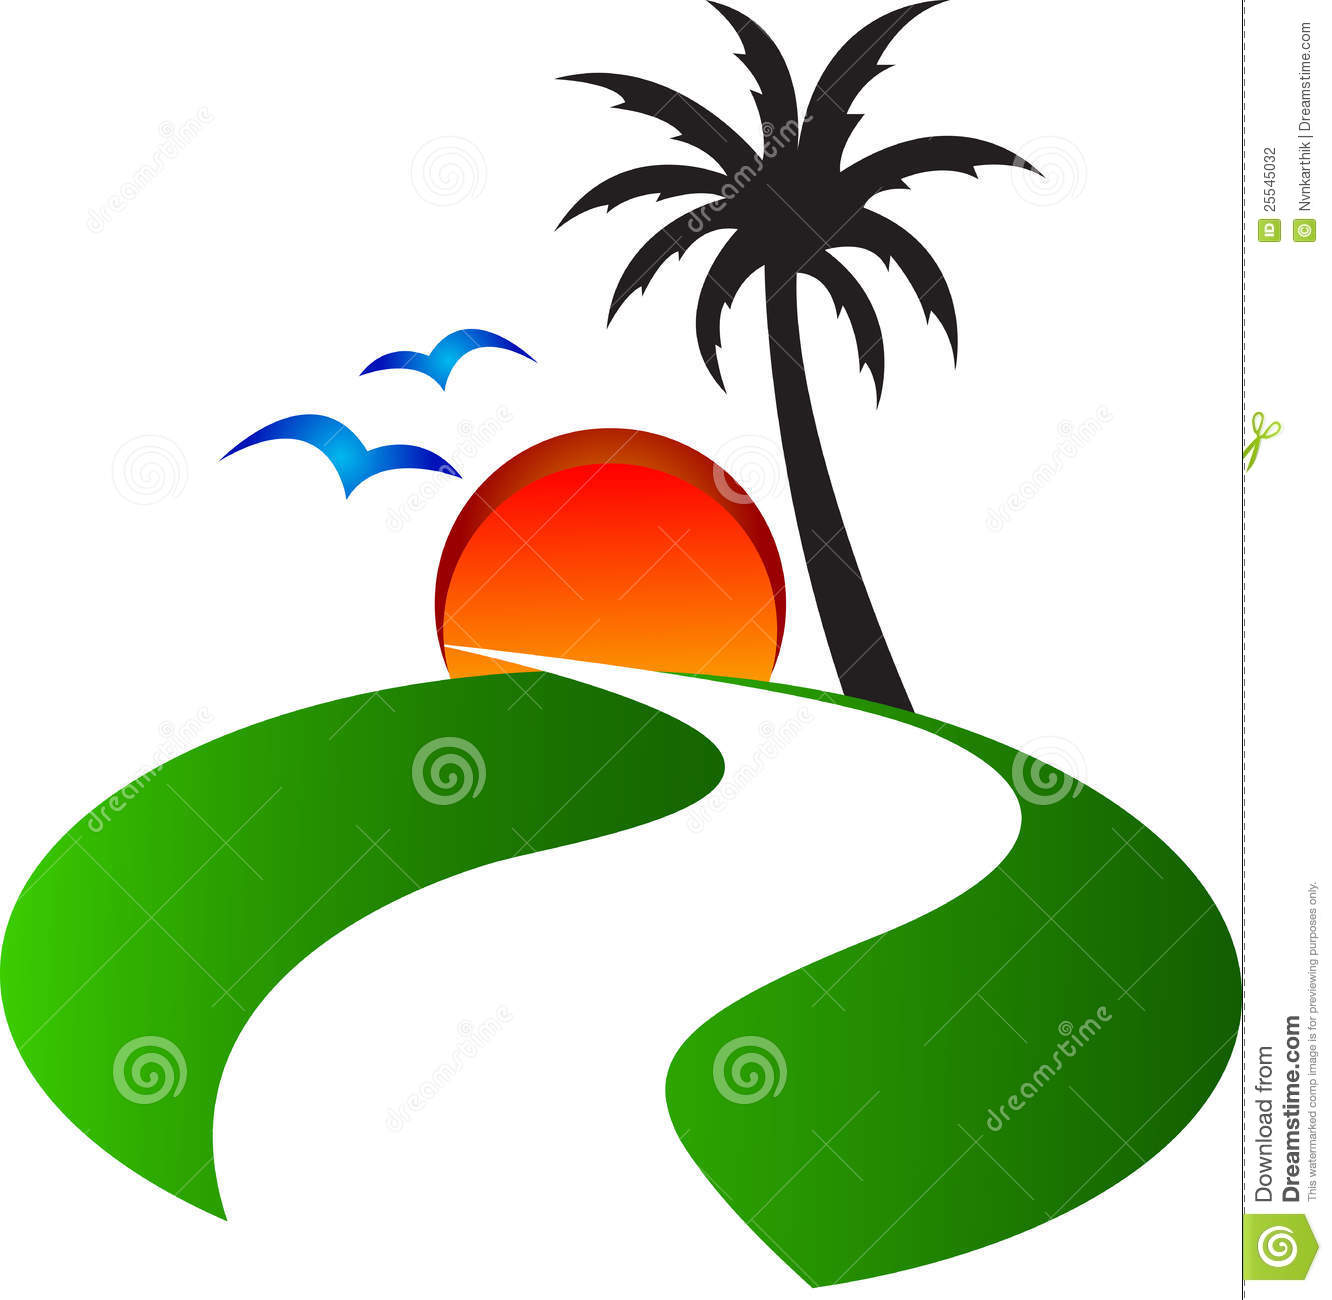 Collection of free download. Pathway clipart life journey